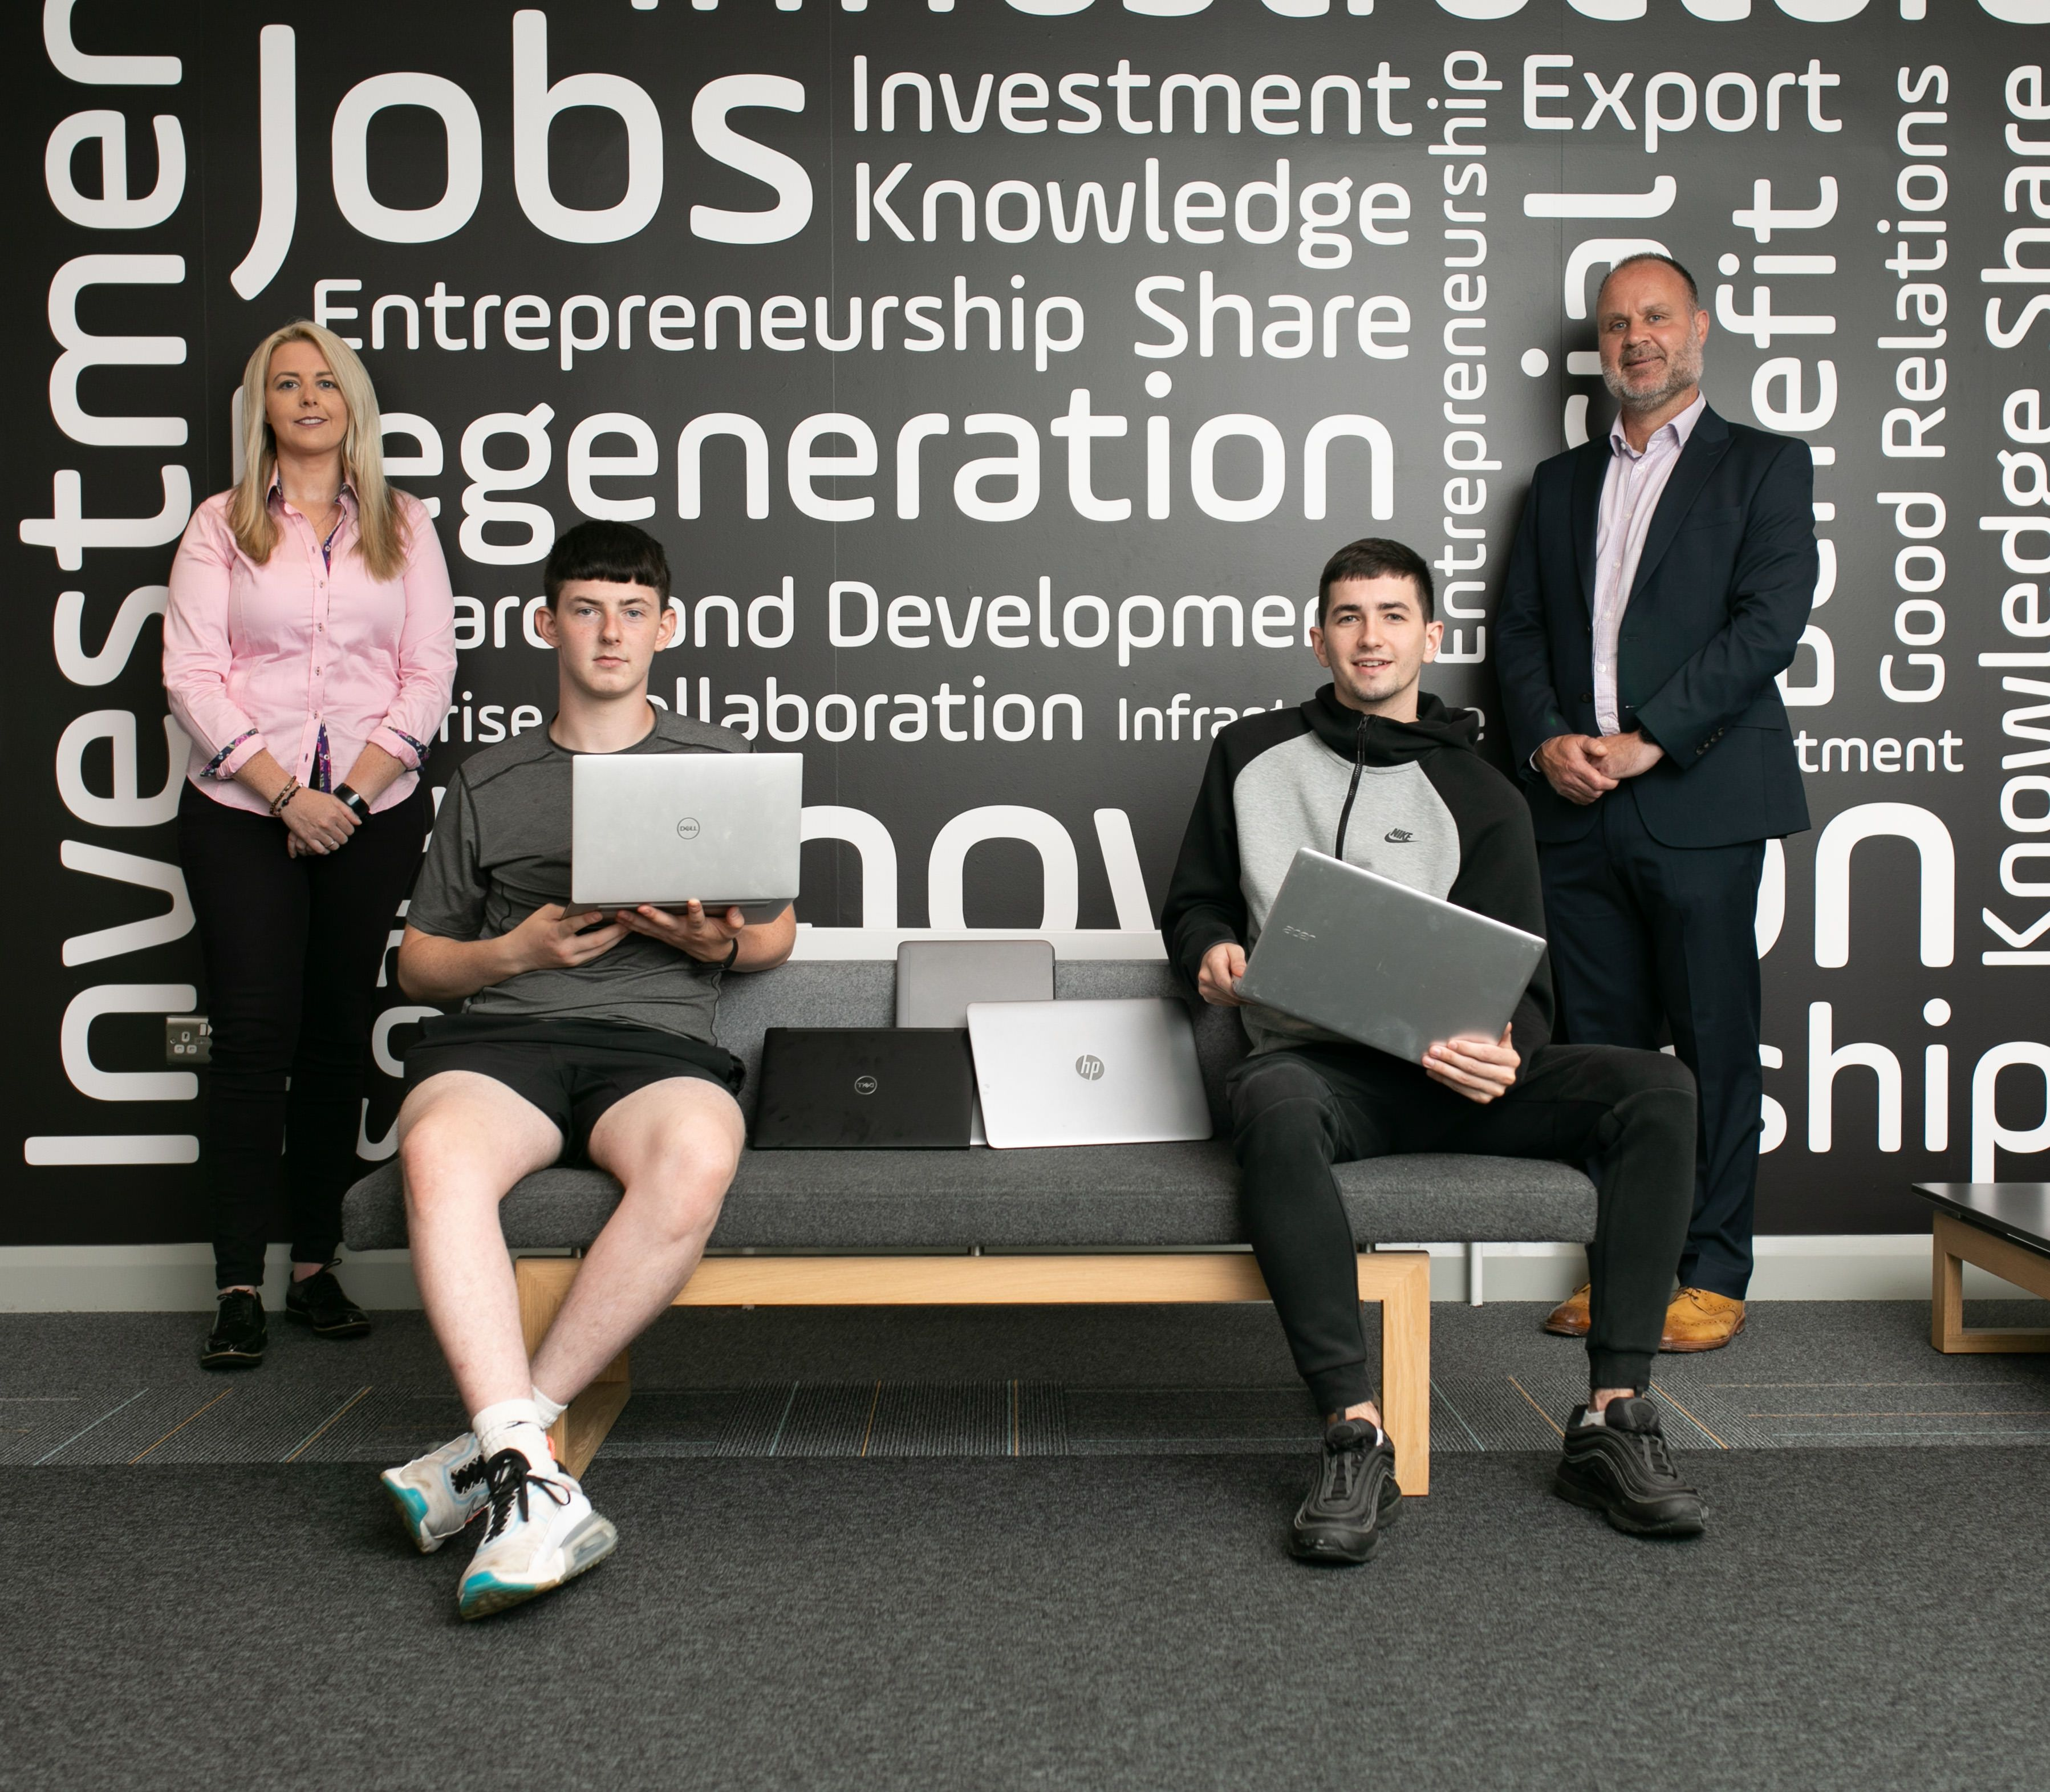 Graffiti Recruitment Managing Director Julie McGrath with Innovation Factory Community Engagement Manager Shane Smith and two of the digital champions, Joseph McKeating (front left) and Eamonn Marley (front right)